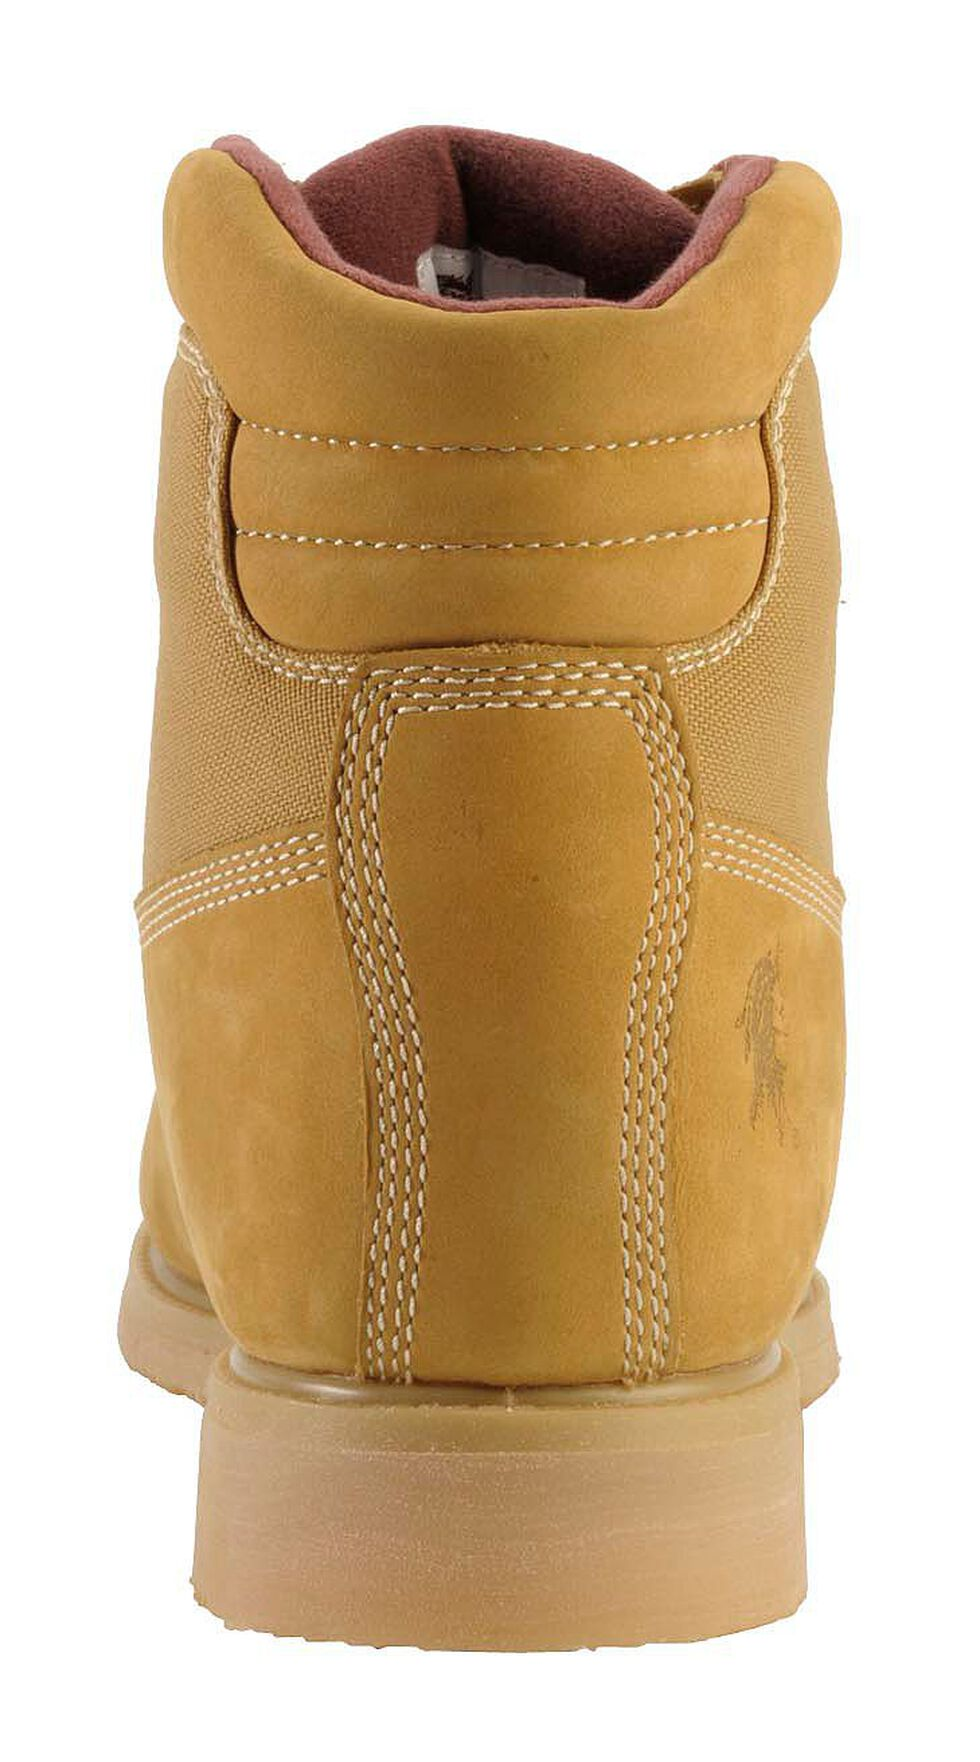 "Chippewa Waterproof & Insulated Nubuc 6"" Lace-Up Work Boots - Round Toe, Golden Tan, hi-res"